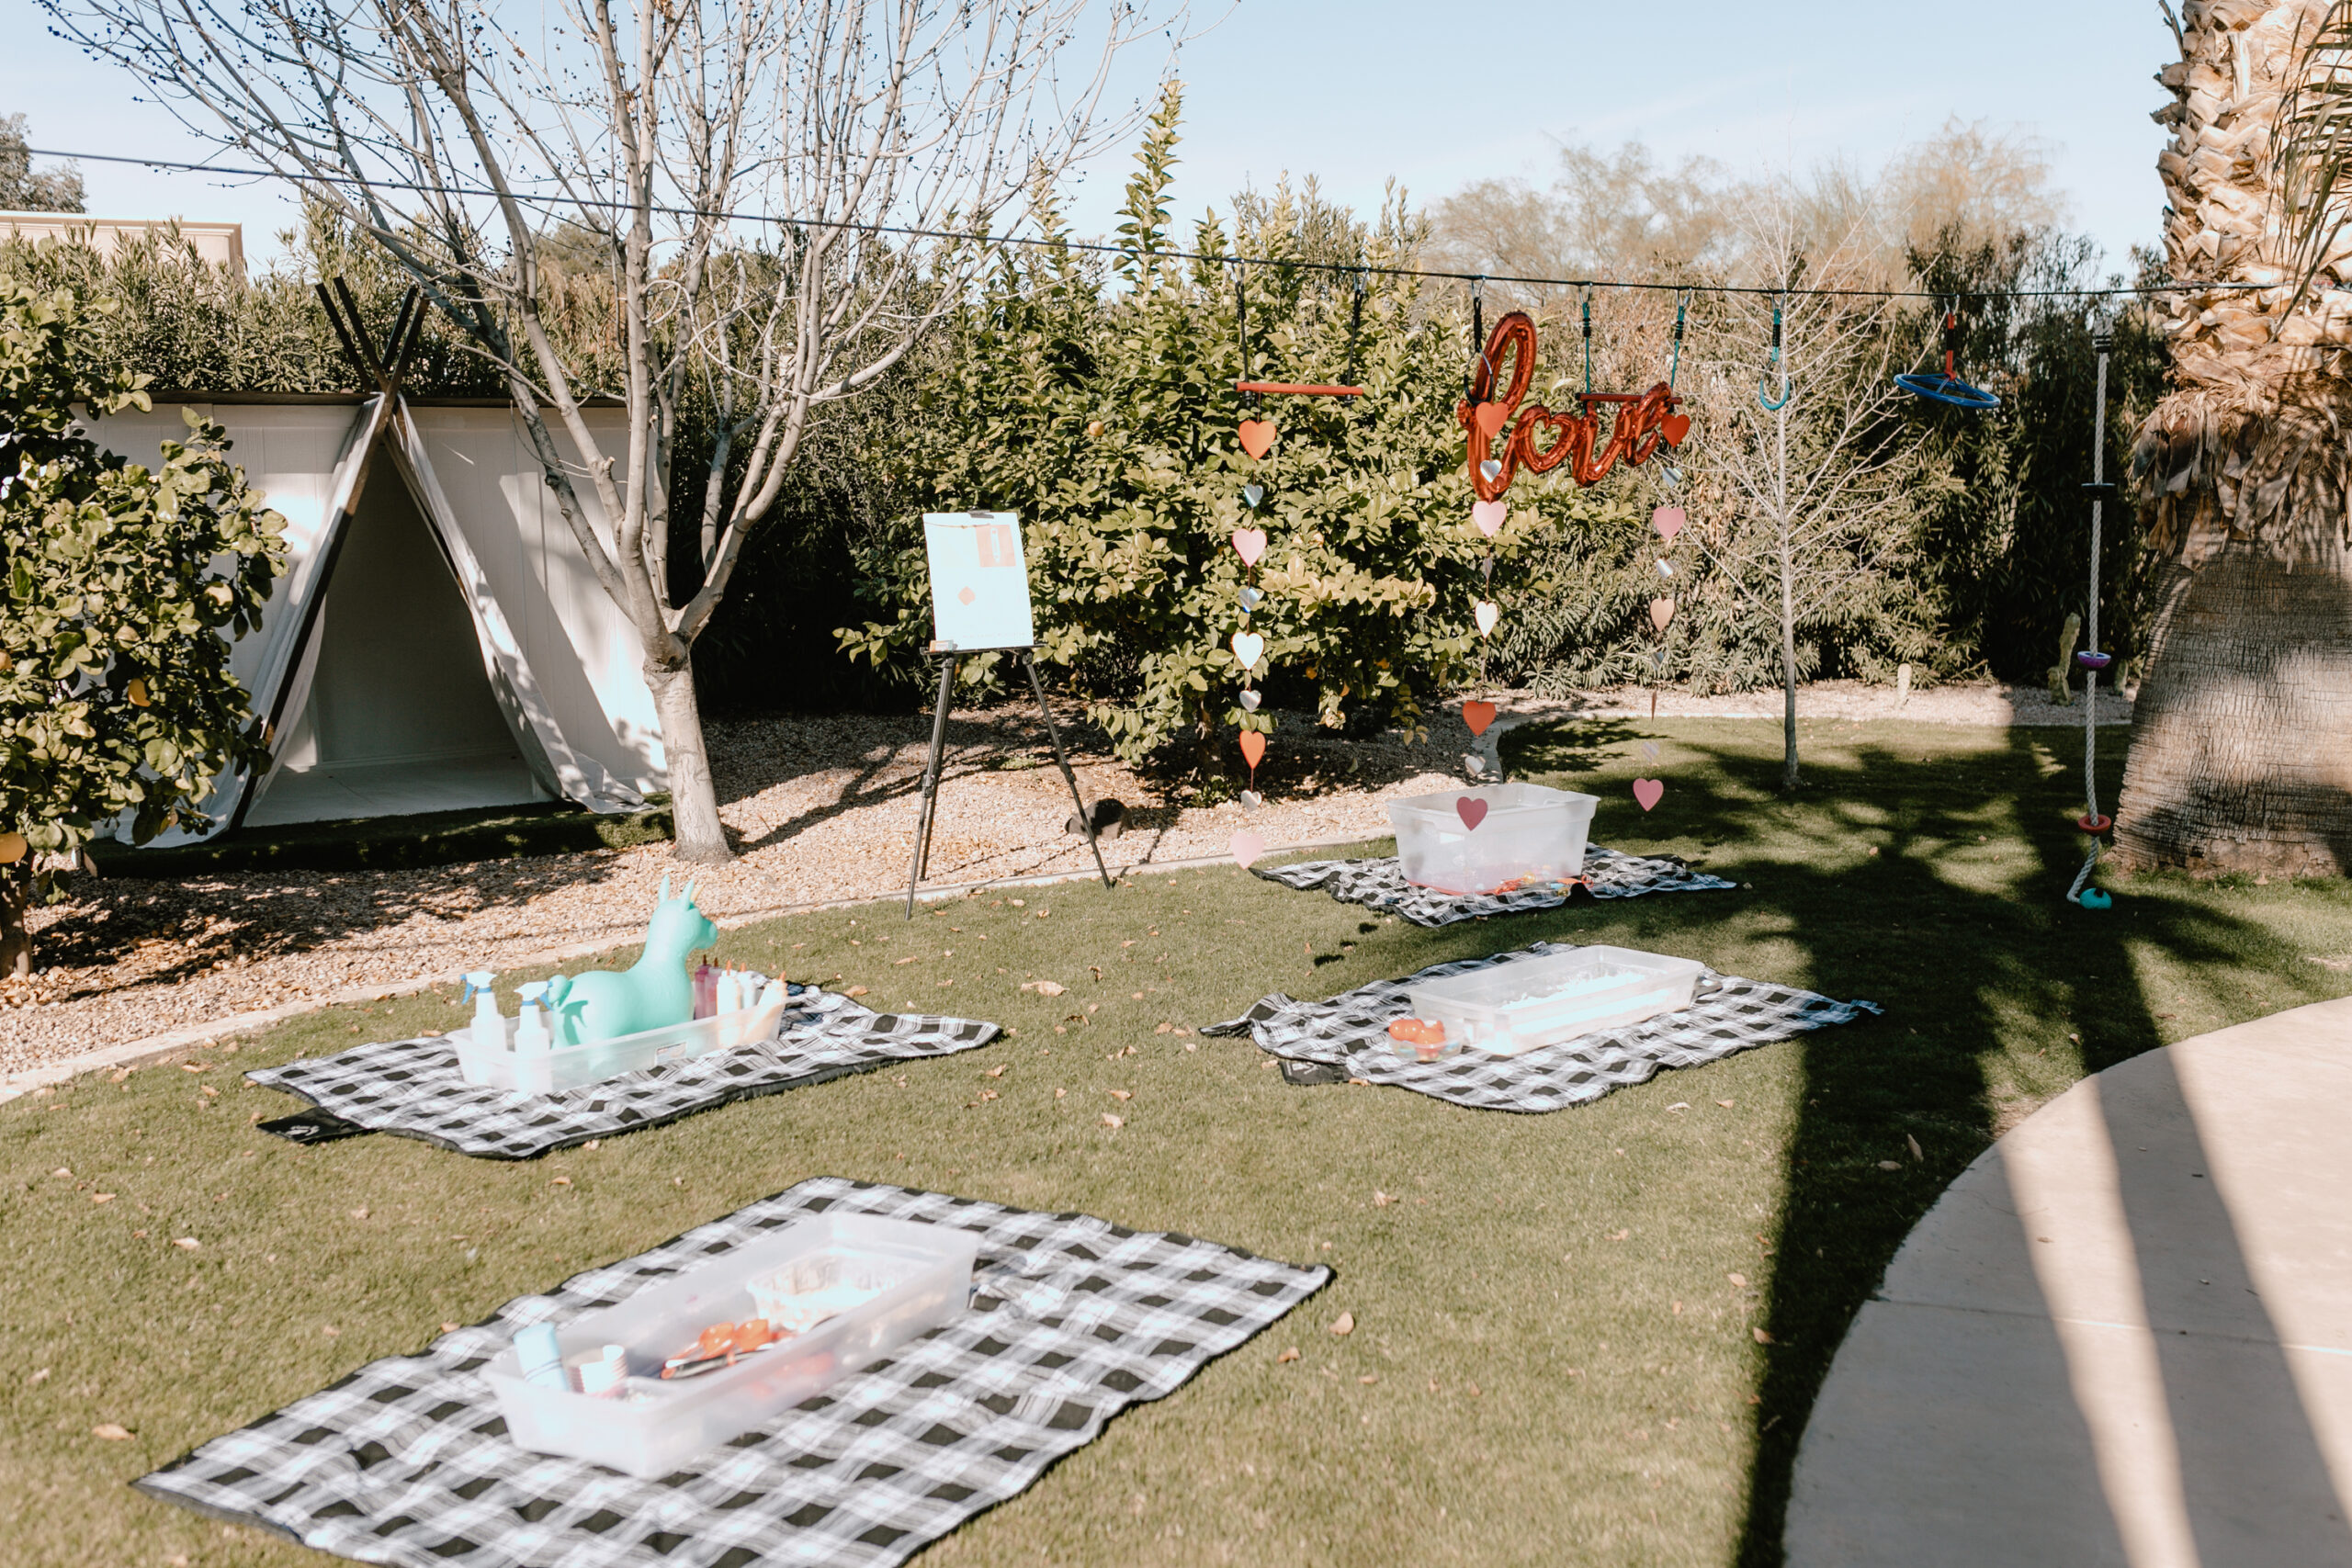 sensory bins in the yard from masterpiece art parties. #valentineday #playdate #artparty